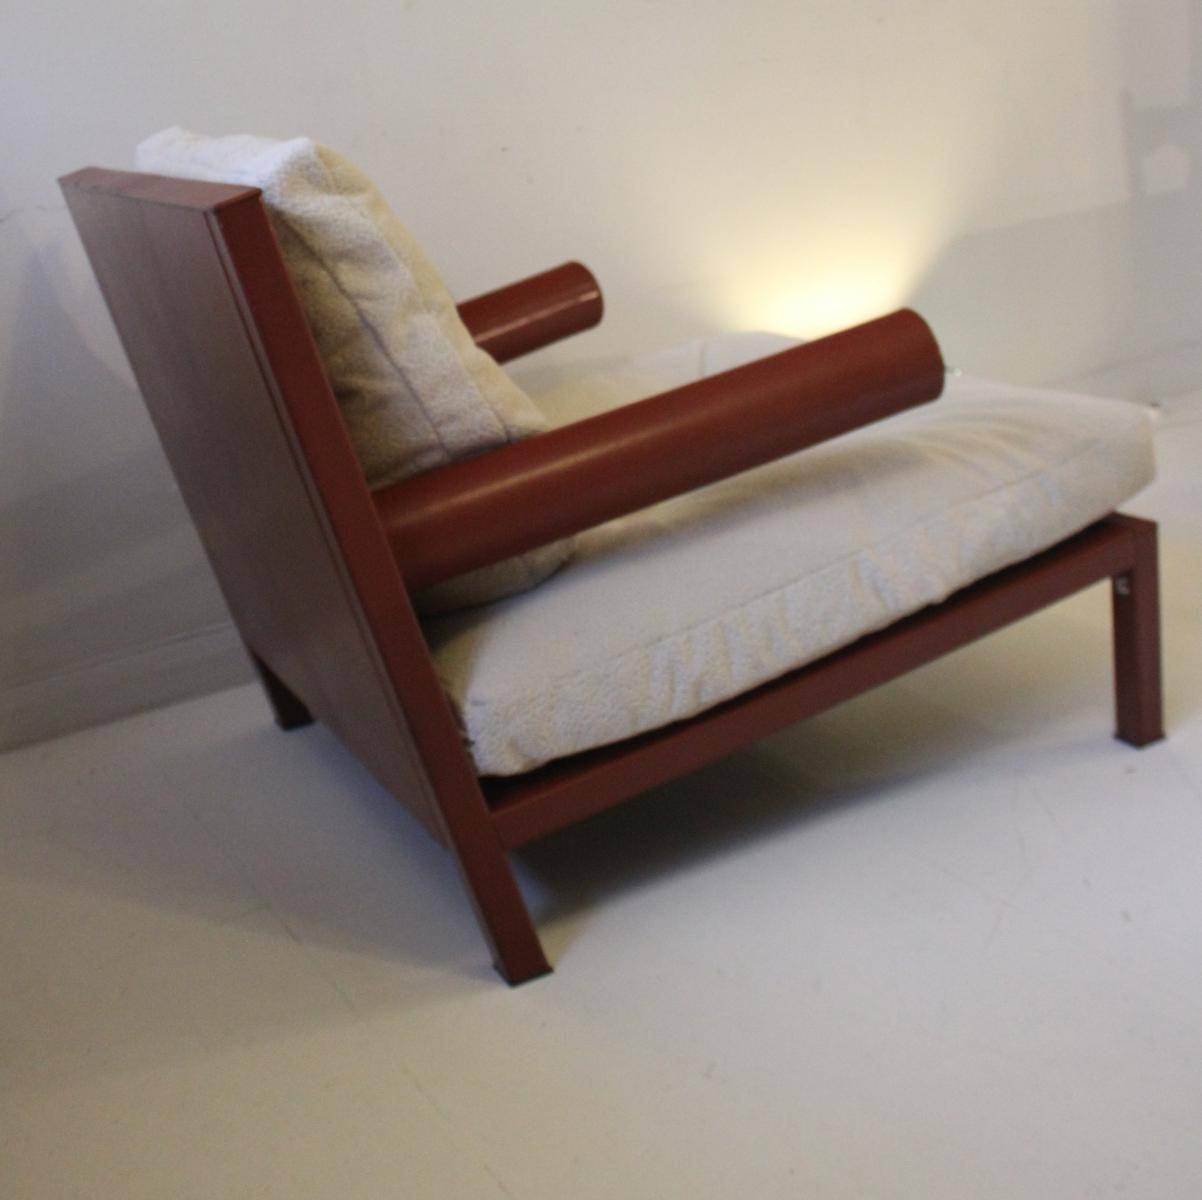 Vintage Oversized Baisity Leather Armchairantonio Citterio For inside Vintage Leather Armchairs (Image 25 of 30)